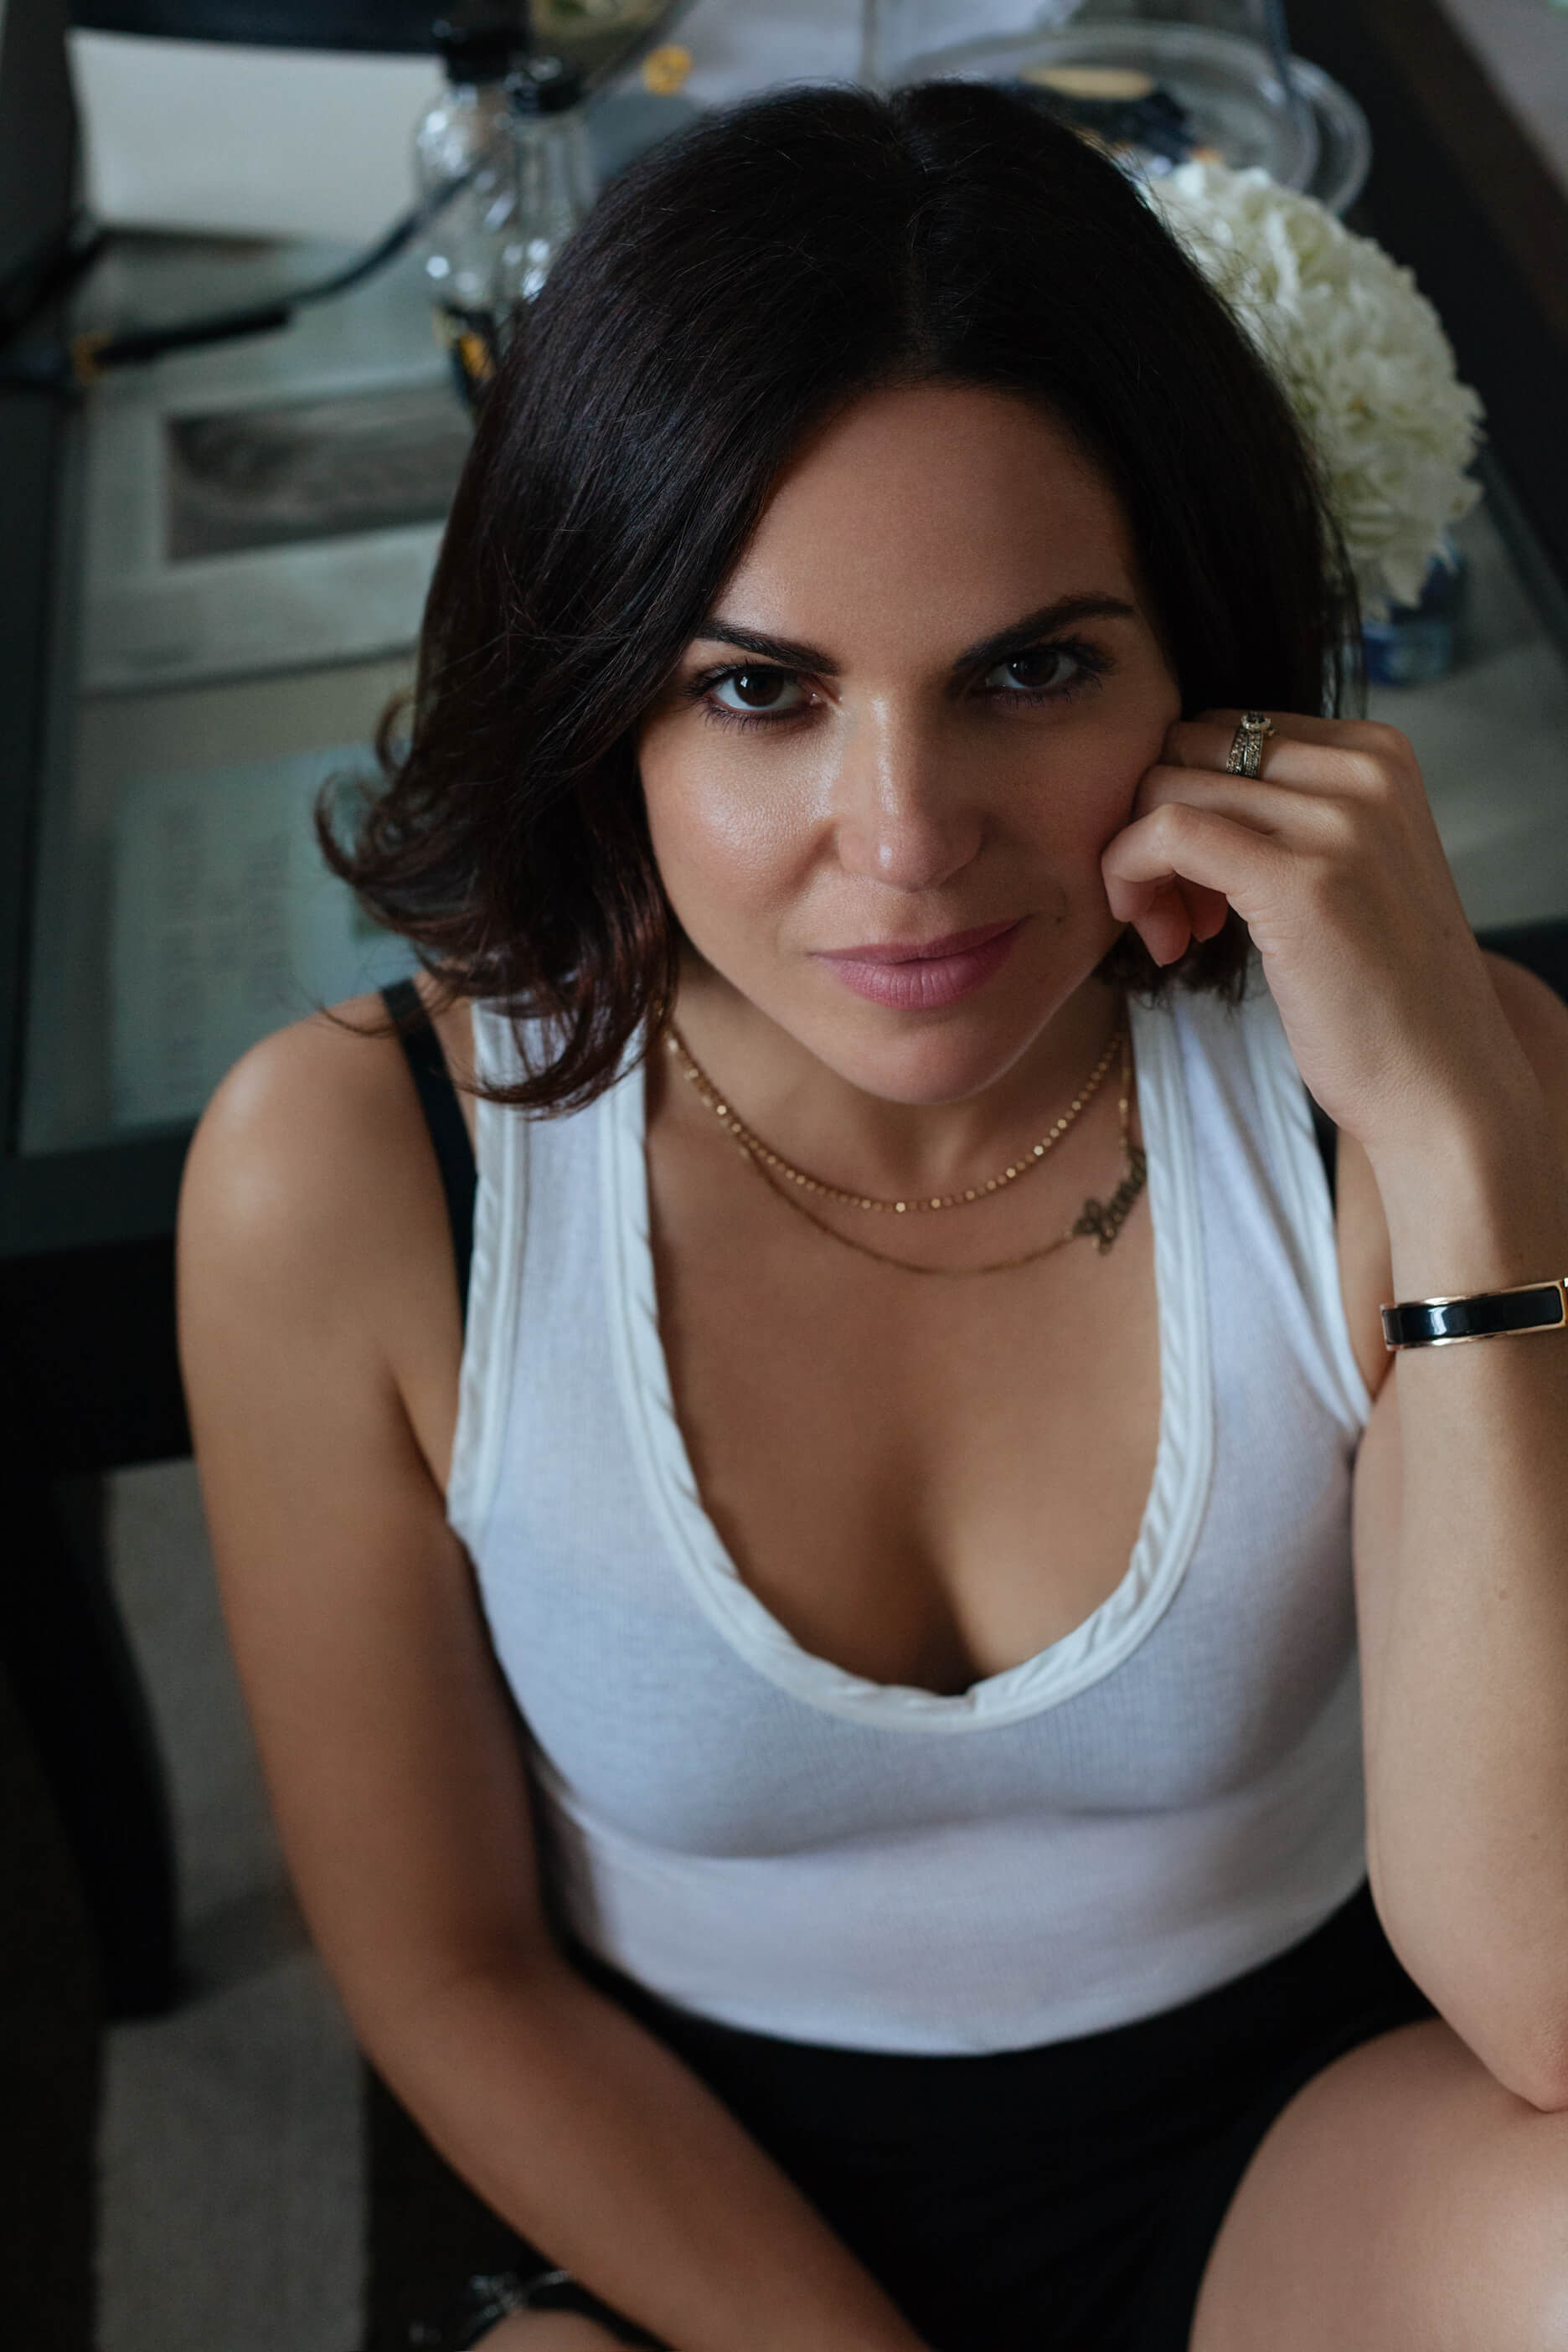 Photoshoot in London with Hollywood Star Lana Parrilla